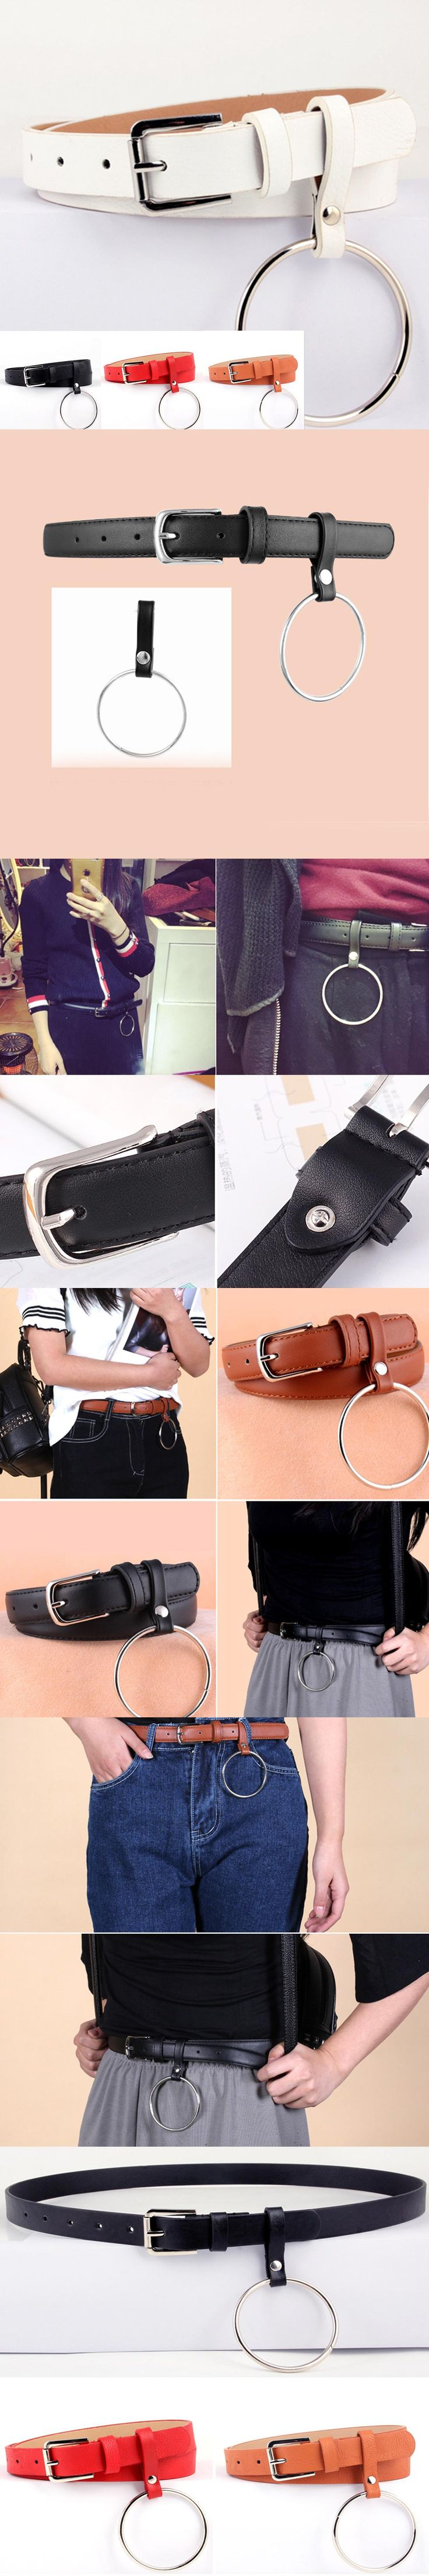 Hot Women Clothes Accessory Unisex Designer Exaggerated Round Metal Circle Belts Brand Punk Jeans Big Ring belt Wild jeans belt